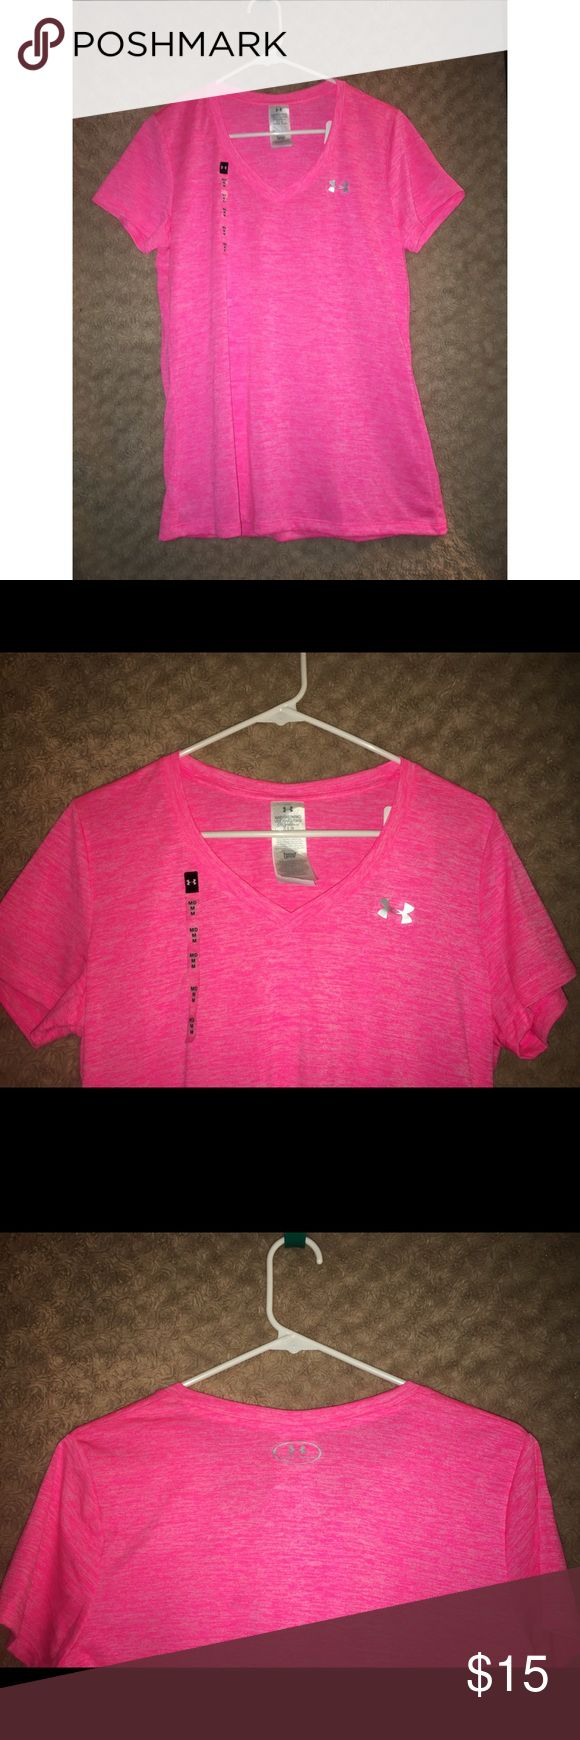 Under Armour V-Neck Under Armour Women's twisted-tech v-neck shirt  • New with tags - never has been worn   Loose fit - super soft heathered fabric  Metallic silver chest logo  • Size: Medium (US 8-10) (as shown in pictures)  • Color: Hot pink  • Fabric content: polyester Under Armour Tops Tees - Short Sleeve